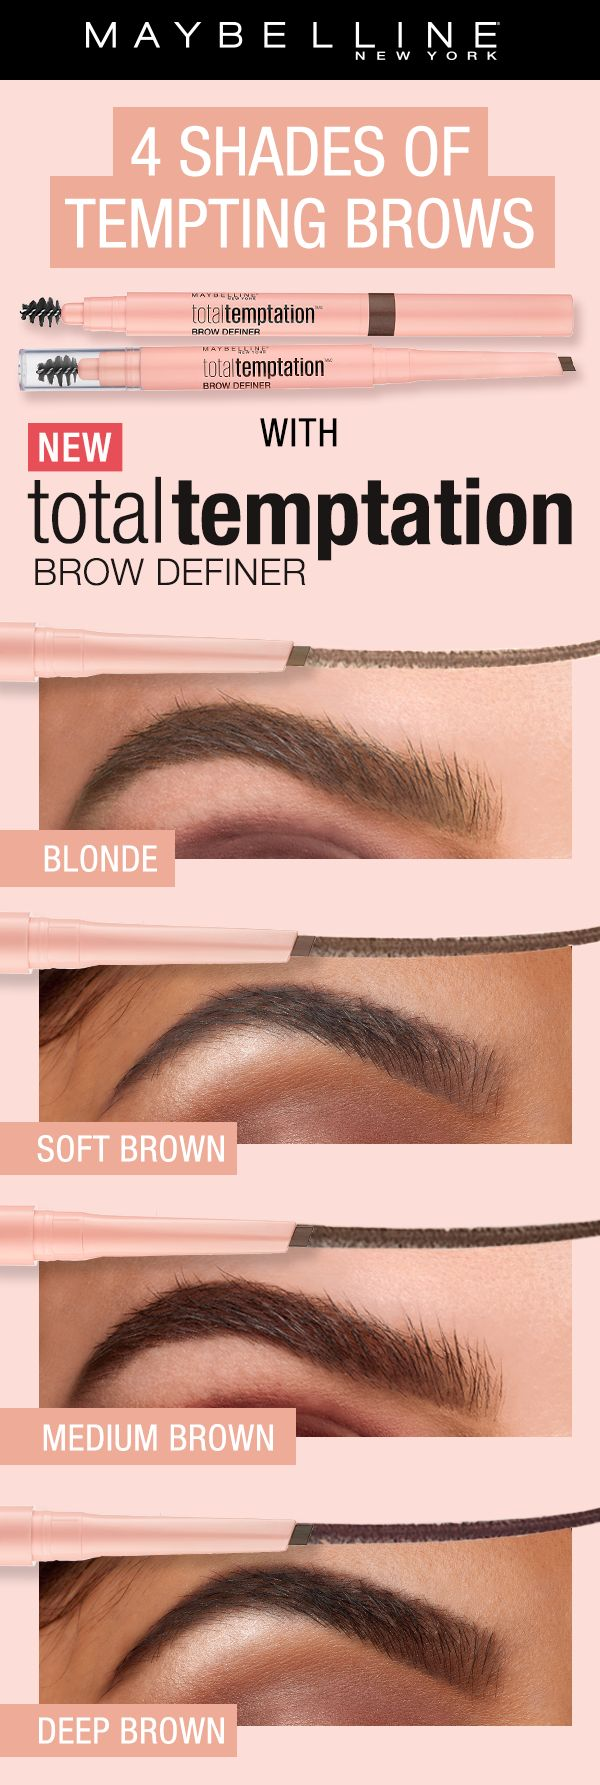 Get natural, softly shaped brows with the NEW Total Temptation Brow Definer.  The unique tear shaped applicator allows for precise application and the spoolie end brushes the brows through for a natural finish.  Available in 4 shades!